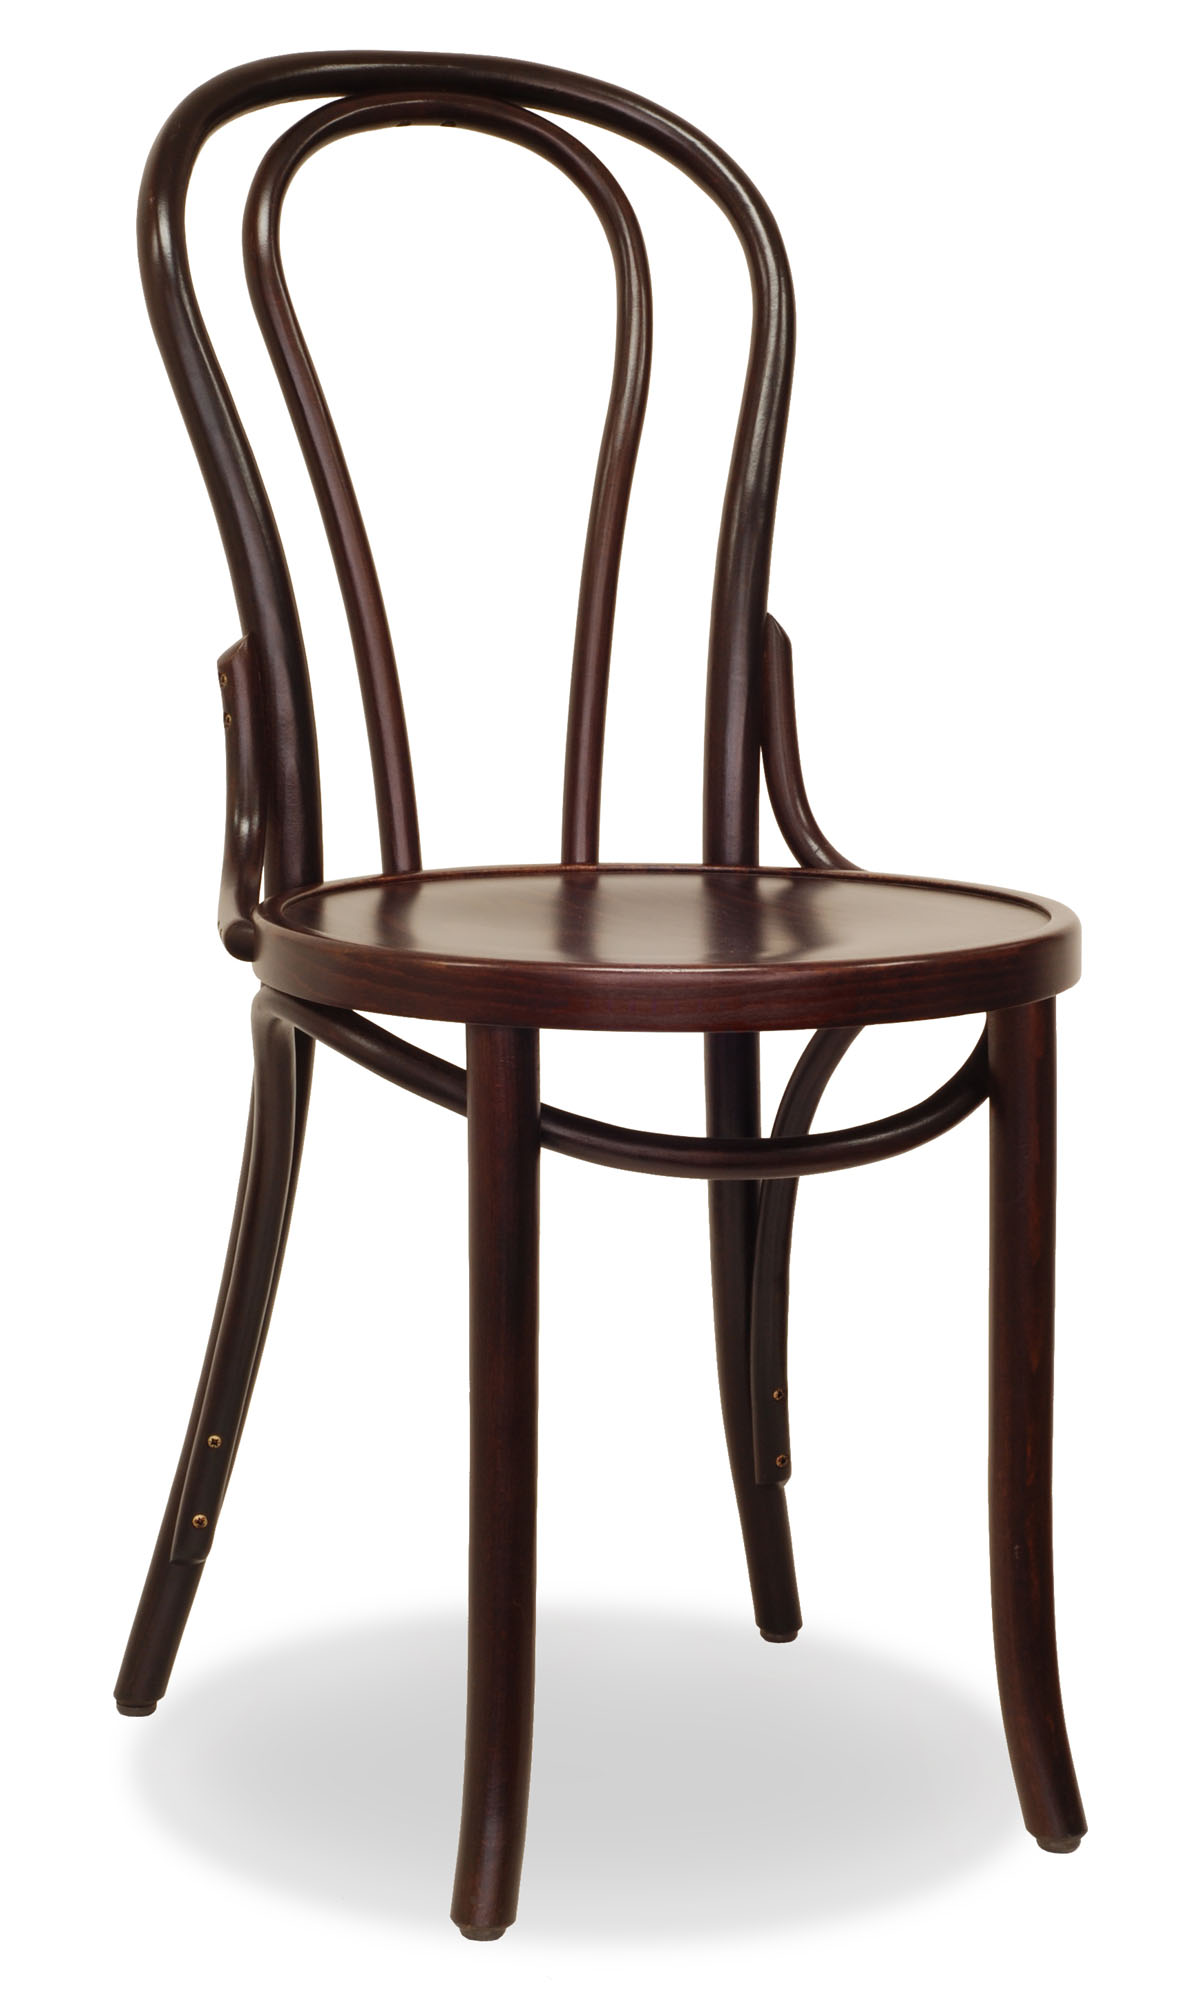 Bentwood Chairs Now Available Online in Australia